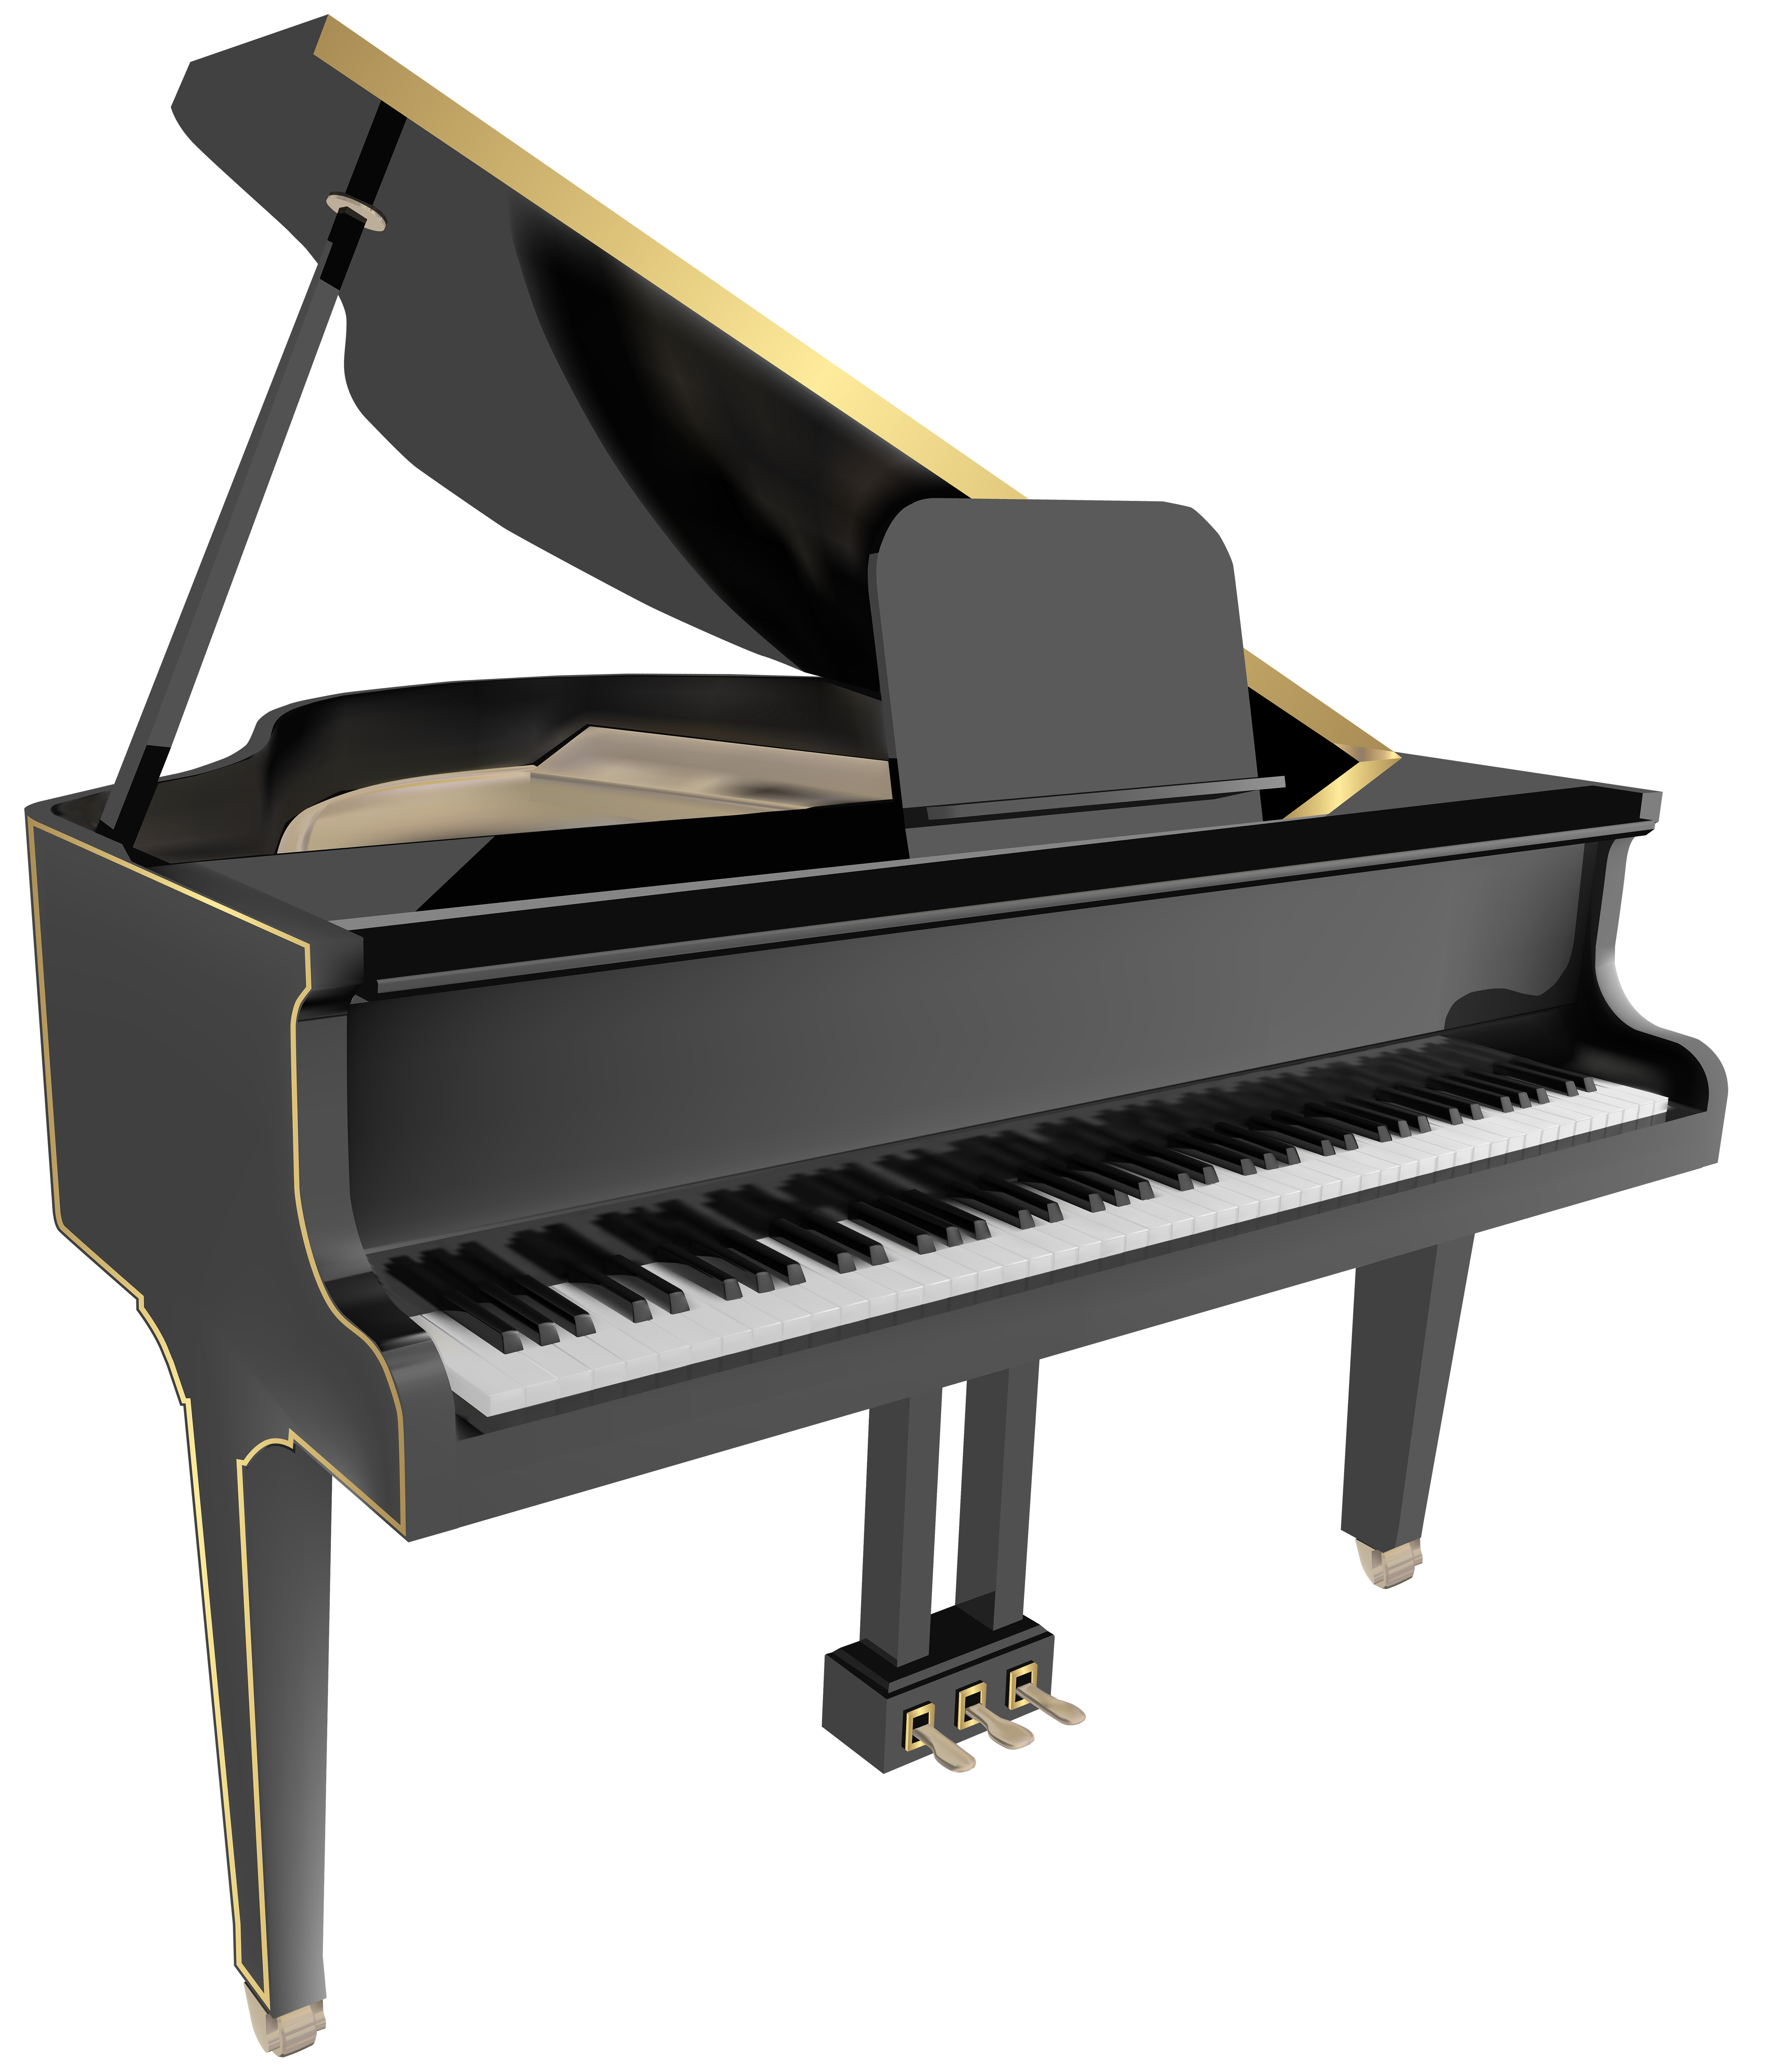 Piano clipart banner. Grand png clip art